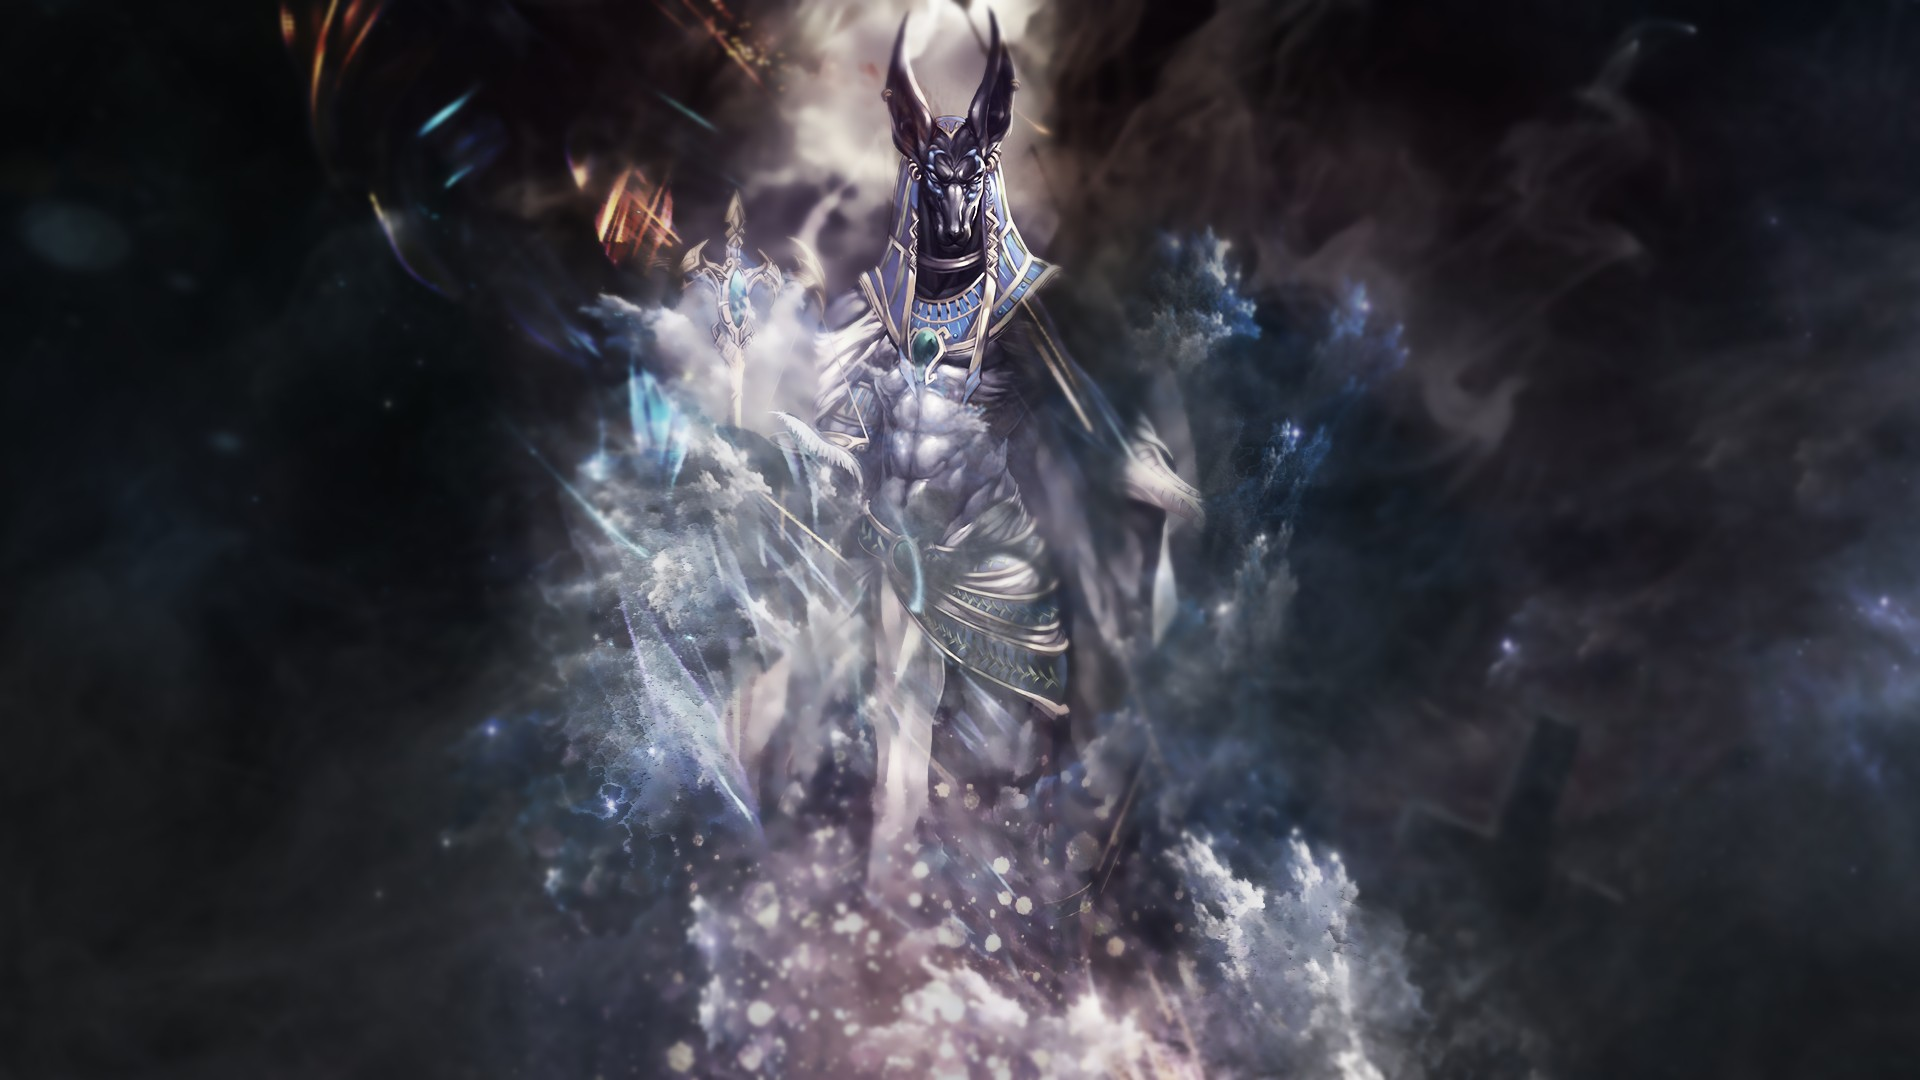 smite anubis hd wallpapers desktop and mobile images